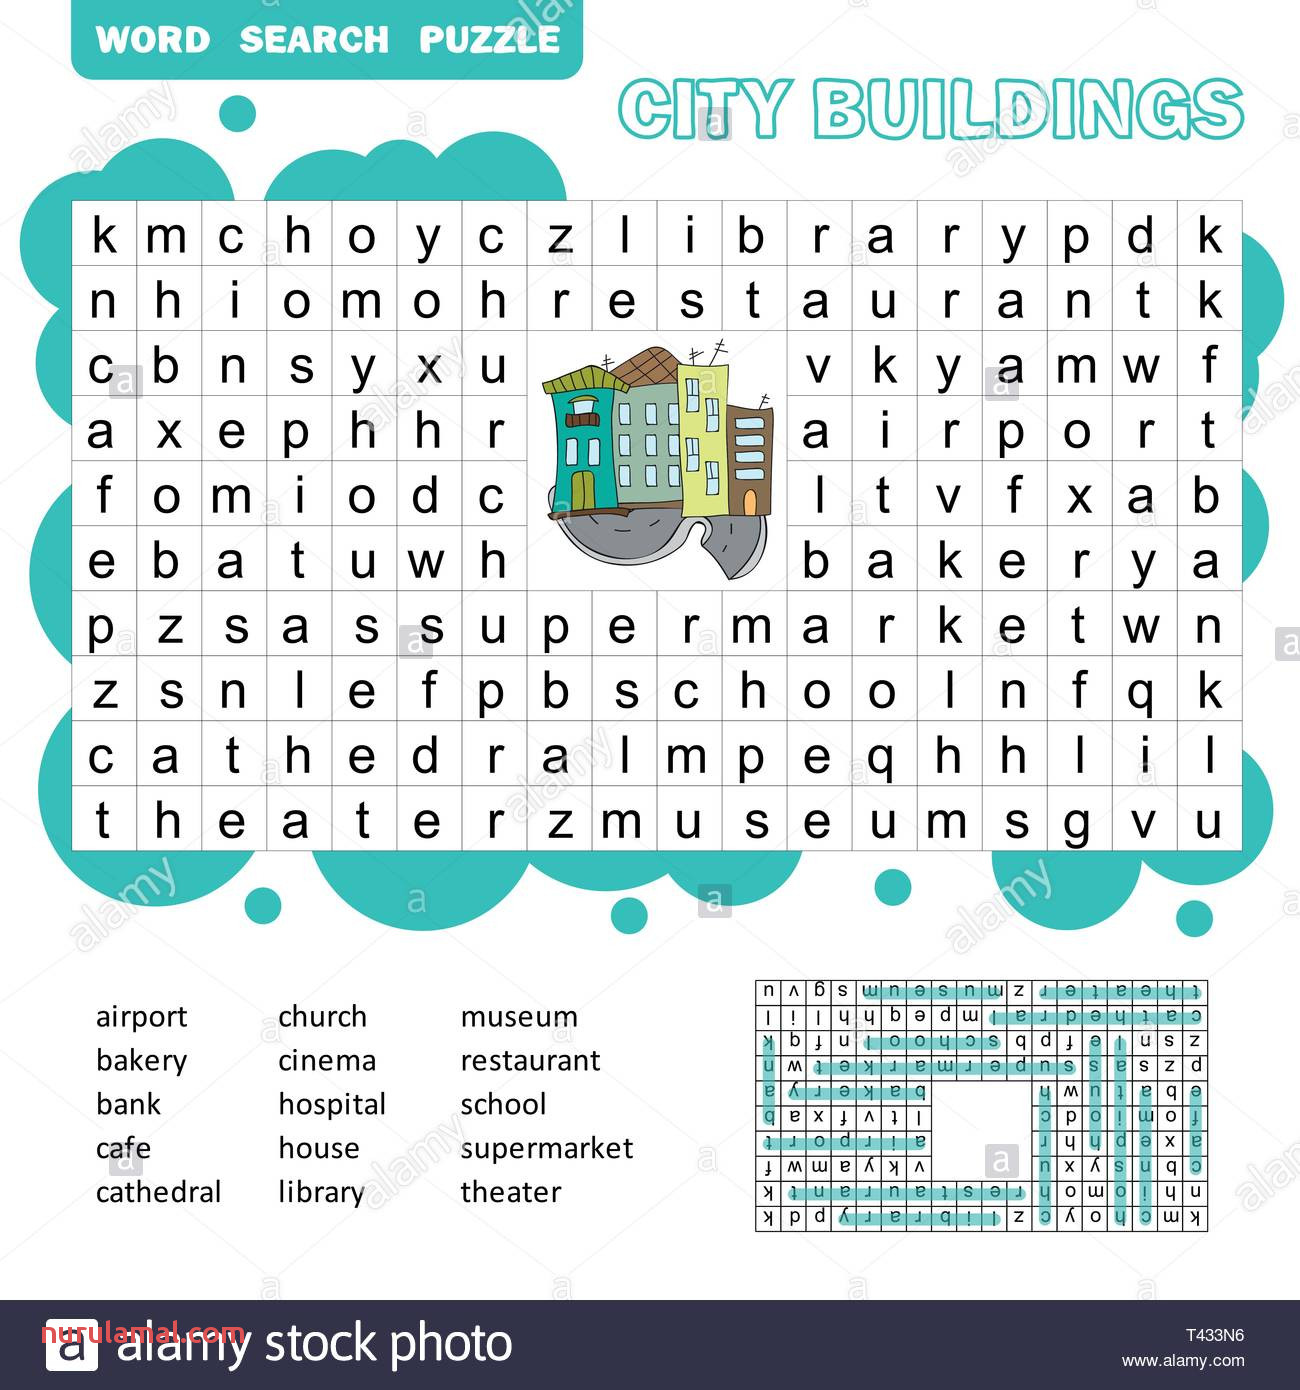 word search puzzle vector game about city buildings worksheet for children colorful printable version with answer T433N6